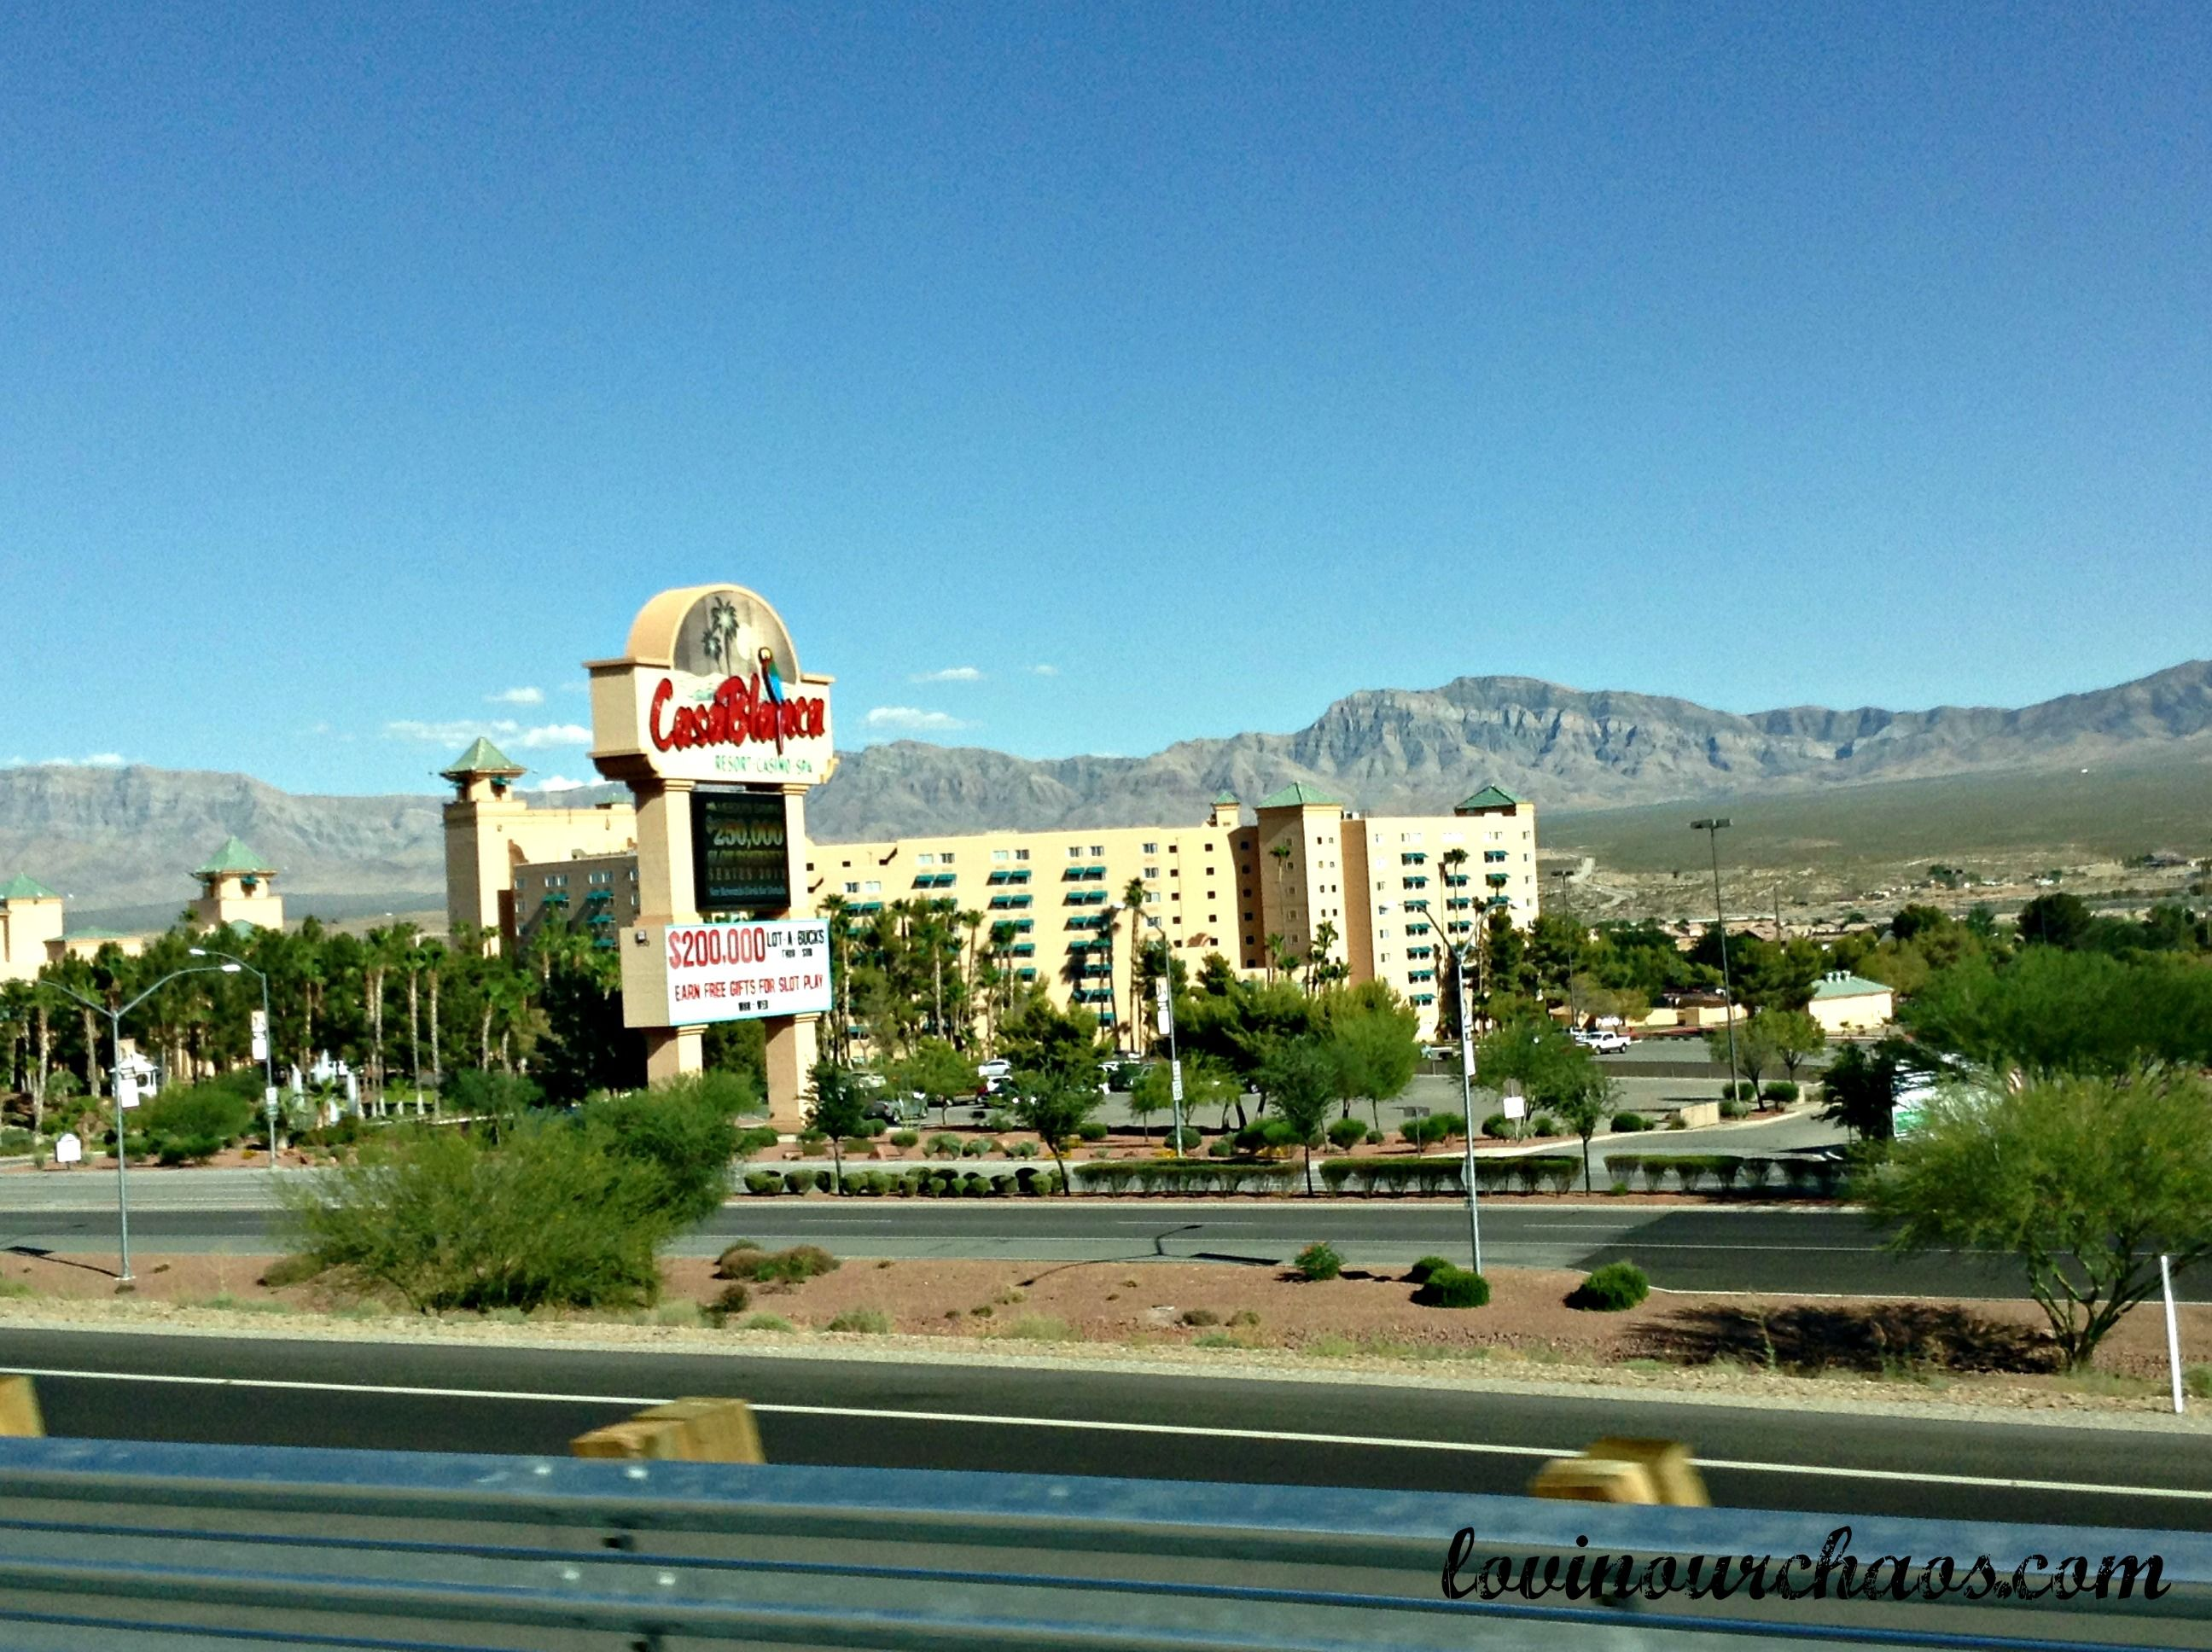 oasis hotel and casino in mesquite nevada